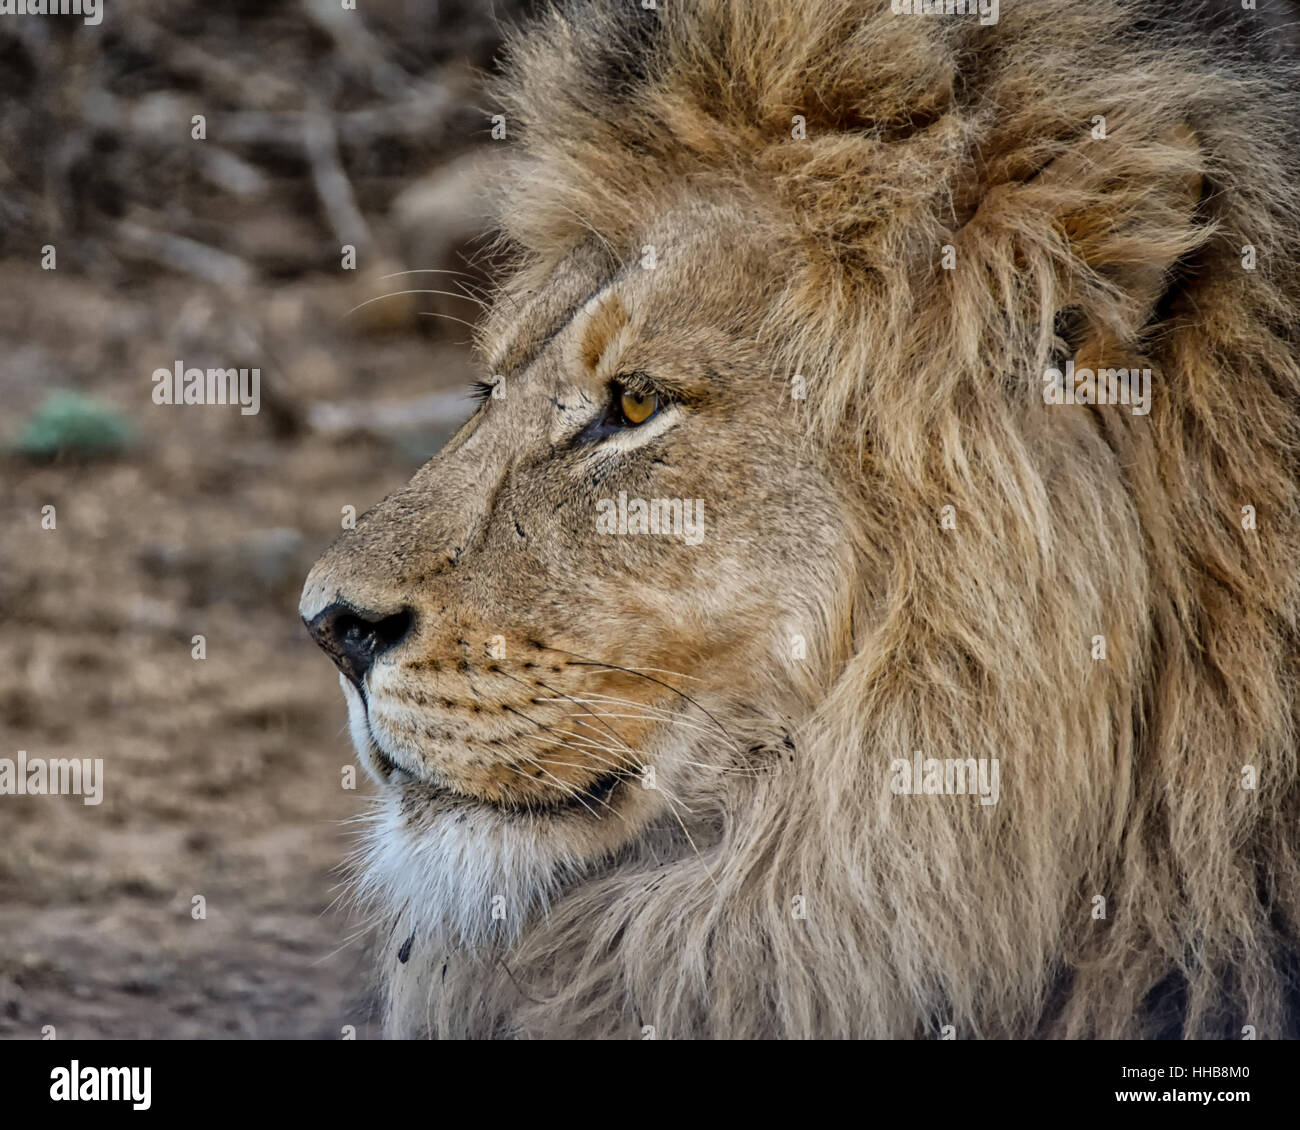 Male Lion in Southern African savanna - Stock Image